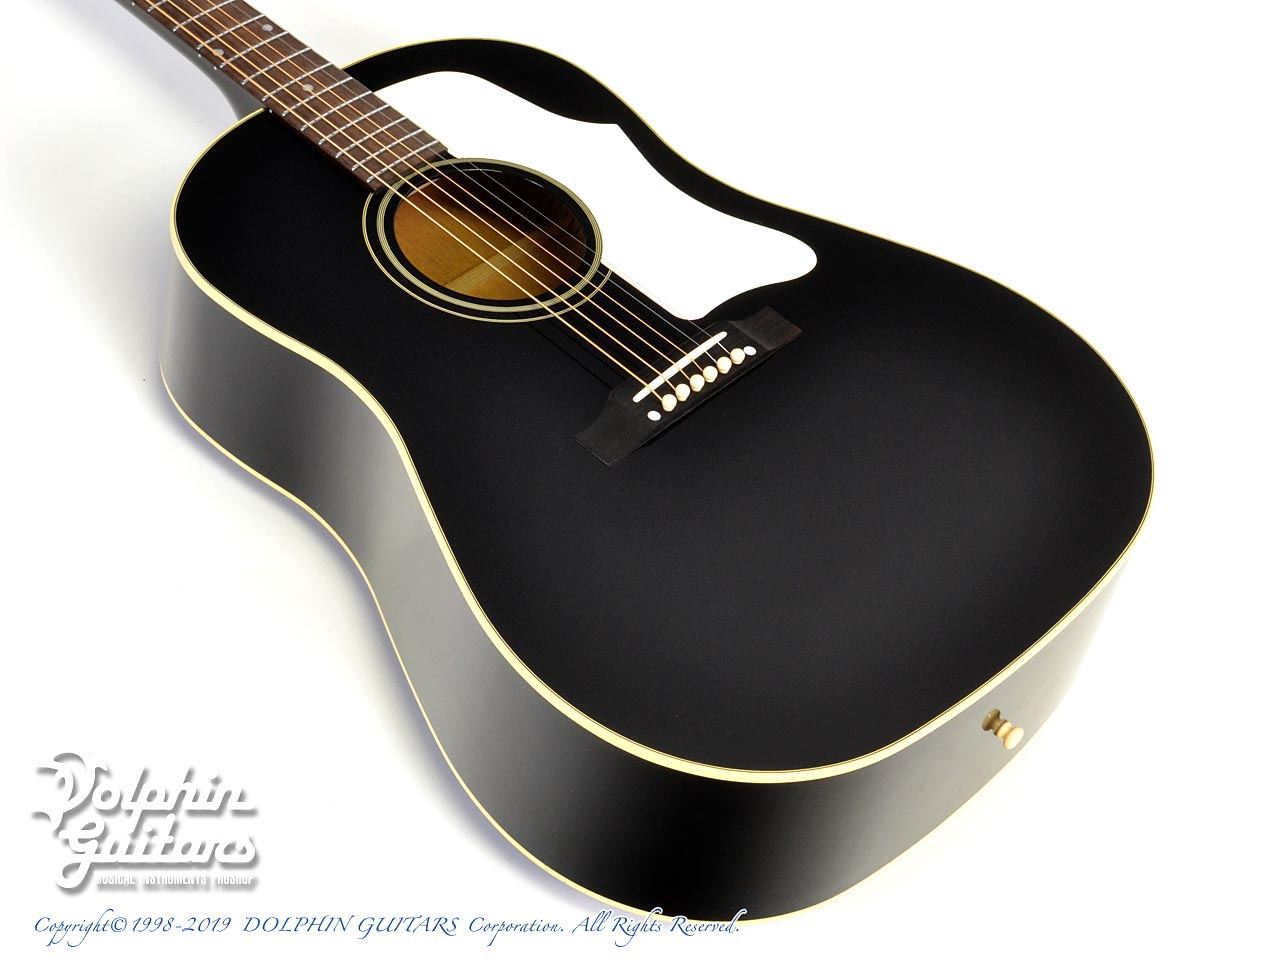 SWITCH: RSD-45 Black 43mm (Torrefied Adirondack Spruce) (1)